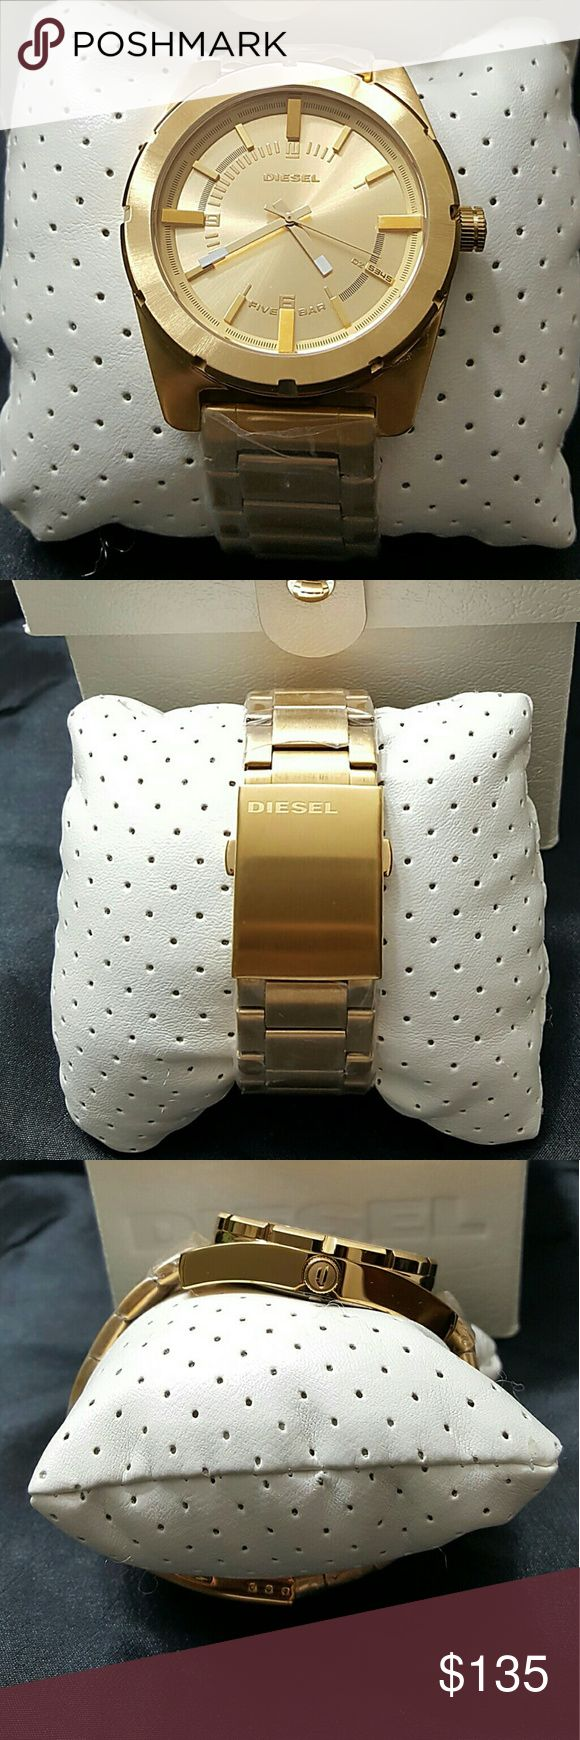 Big Sale,NWT Diesel gold watch Sale firm price  Brand NWT Diesel Men's gold Watch.   Still have the plastic on the band and the back of the watch   FIRM PRICE FIRM PRICE FIRM  $299.00 . AUTHENTIC WATCH . AUTHENTIC BOX . AUTHENTIC MANUAL   SHIPPING PLEASE allow few days for me to shipped it. I have to get it from my store.   THANK YOU FOR YOUR UNDERSTANDING. Diesel Accessories Watches